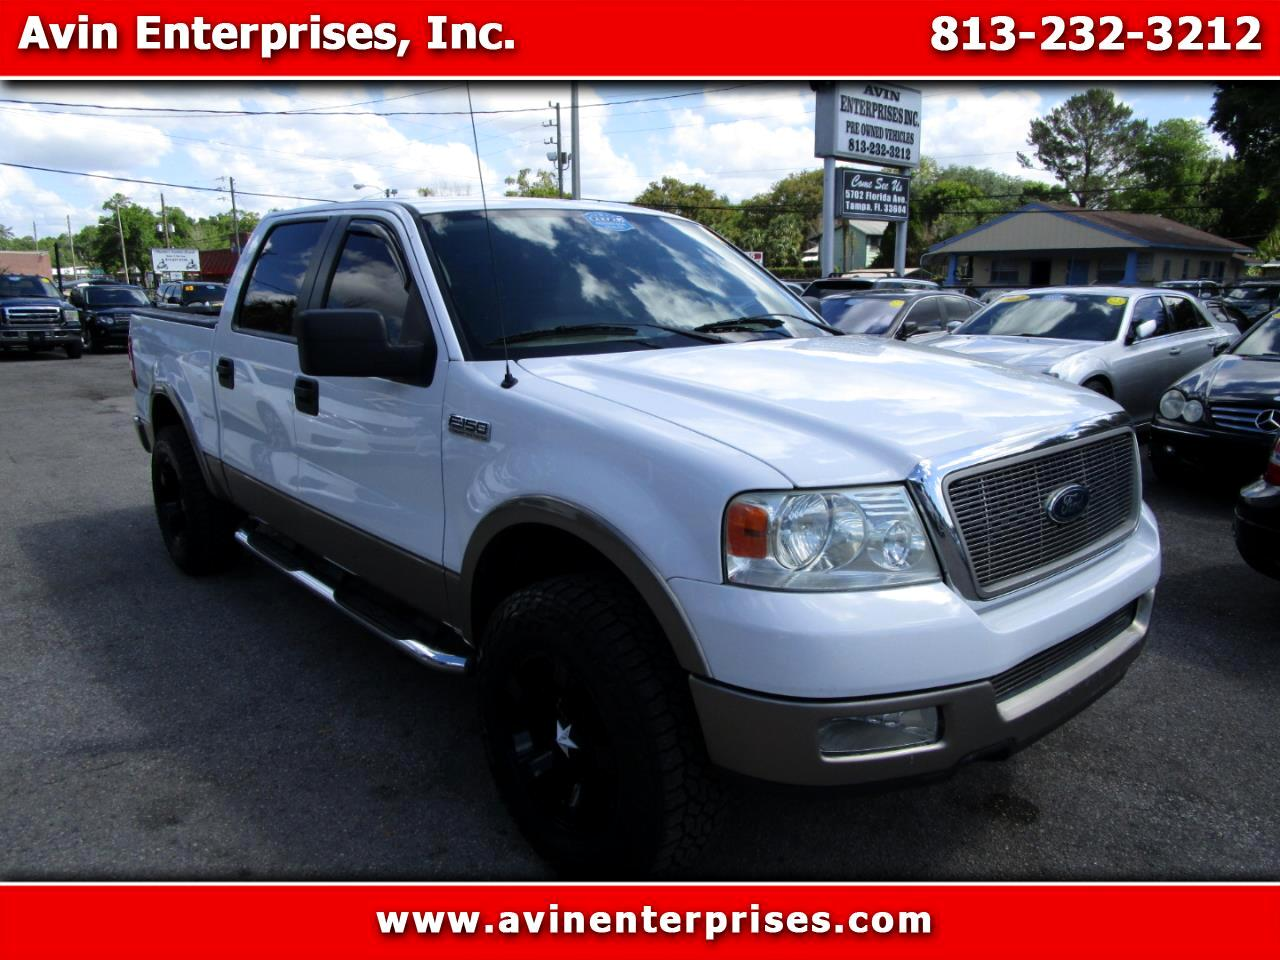 Ford F-150 Lariat SuperCrew Short Bed 2WD 2005